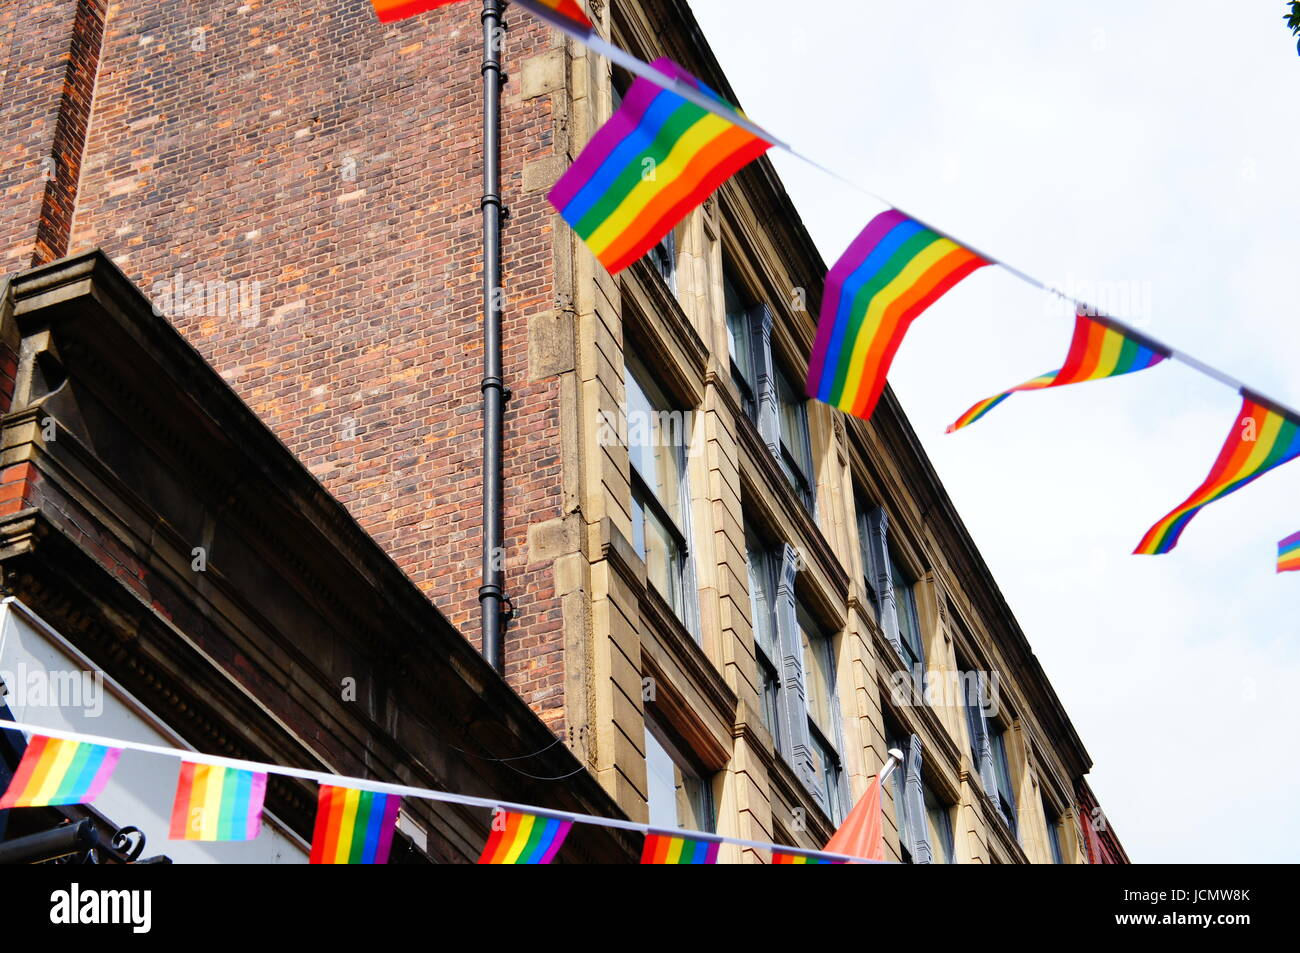 Manchester Pride flags and bunting - Stock Image